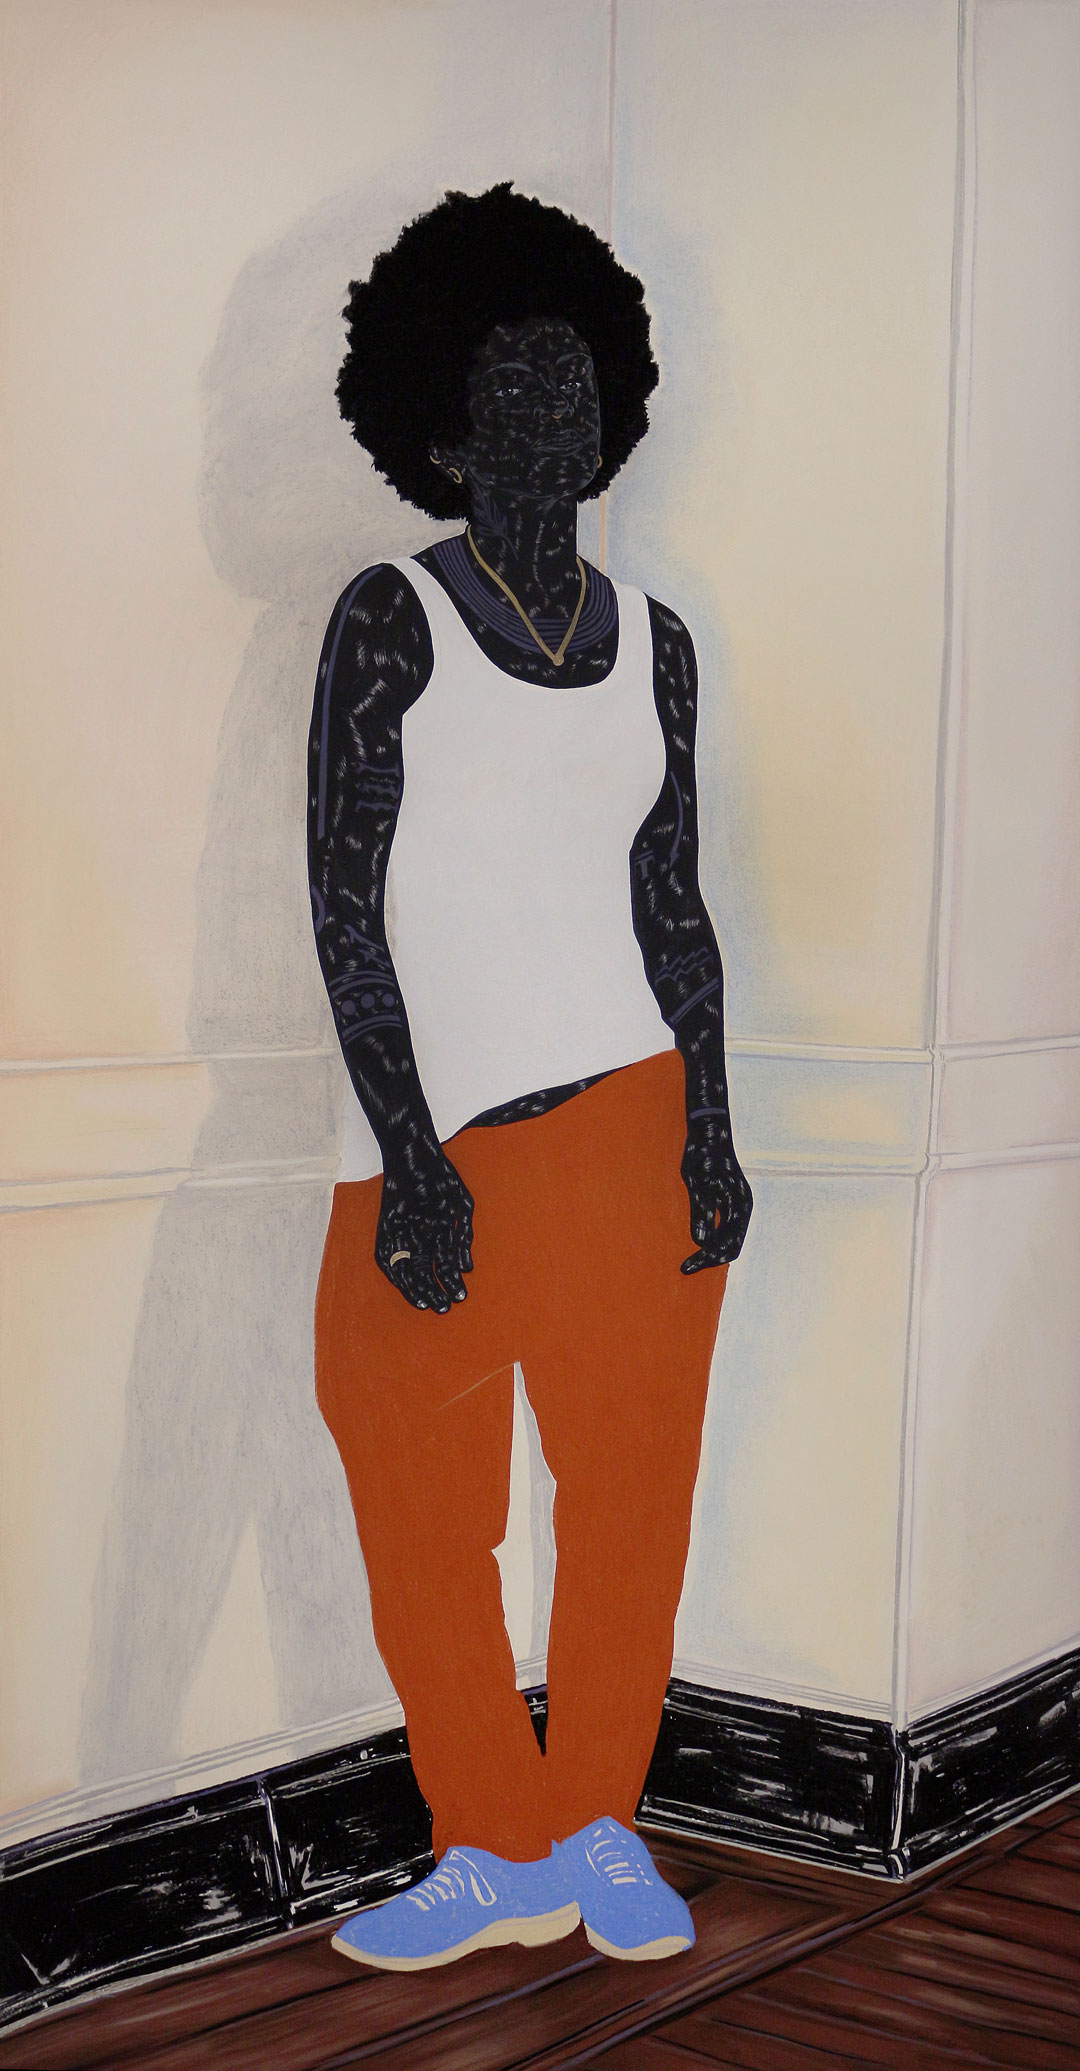 Toyin Ojih Odutola's Postures: In This Imperfect Present Moment